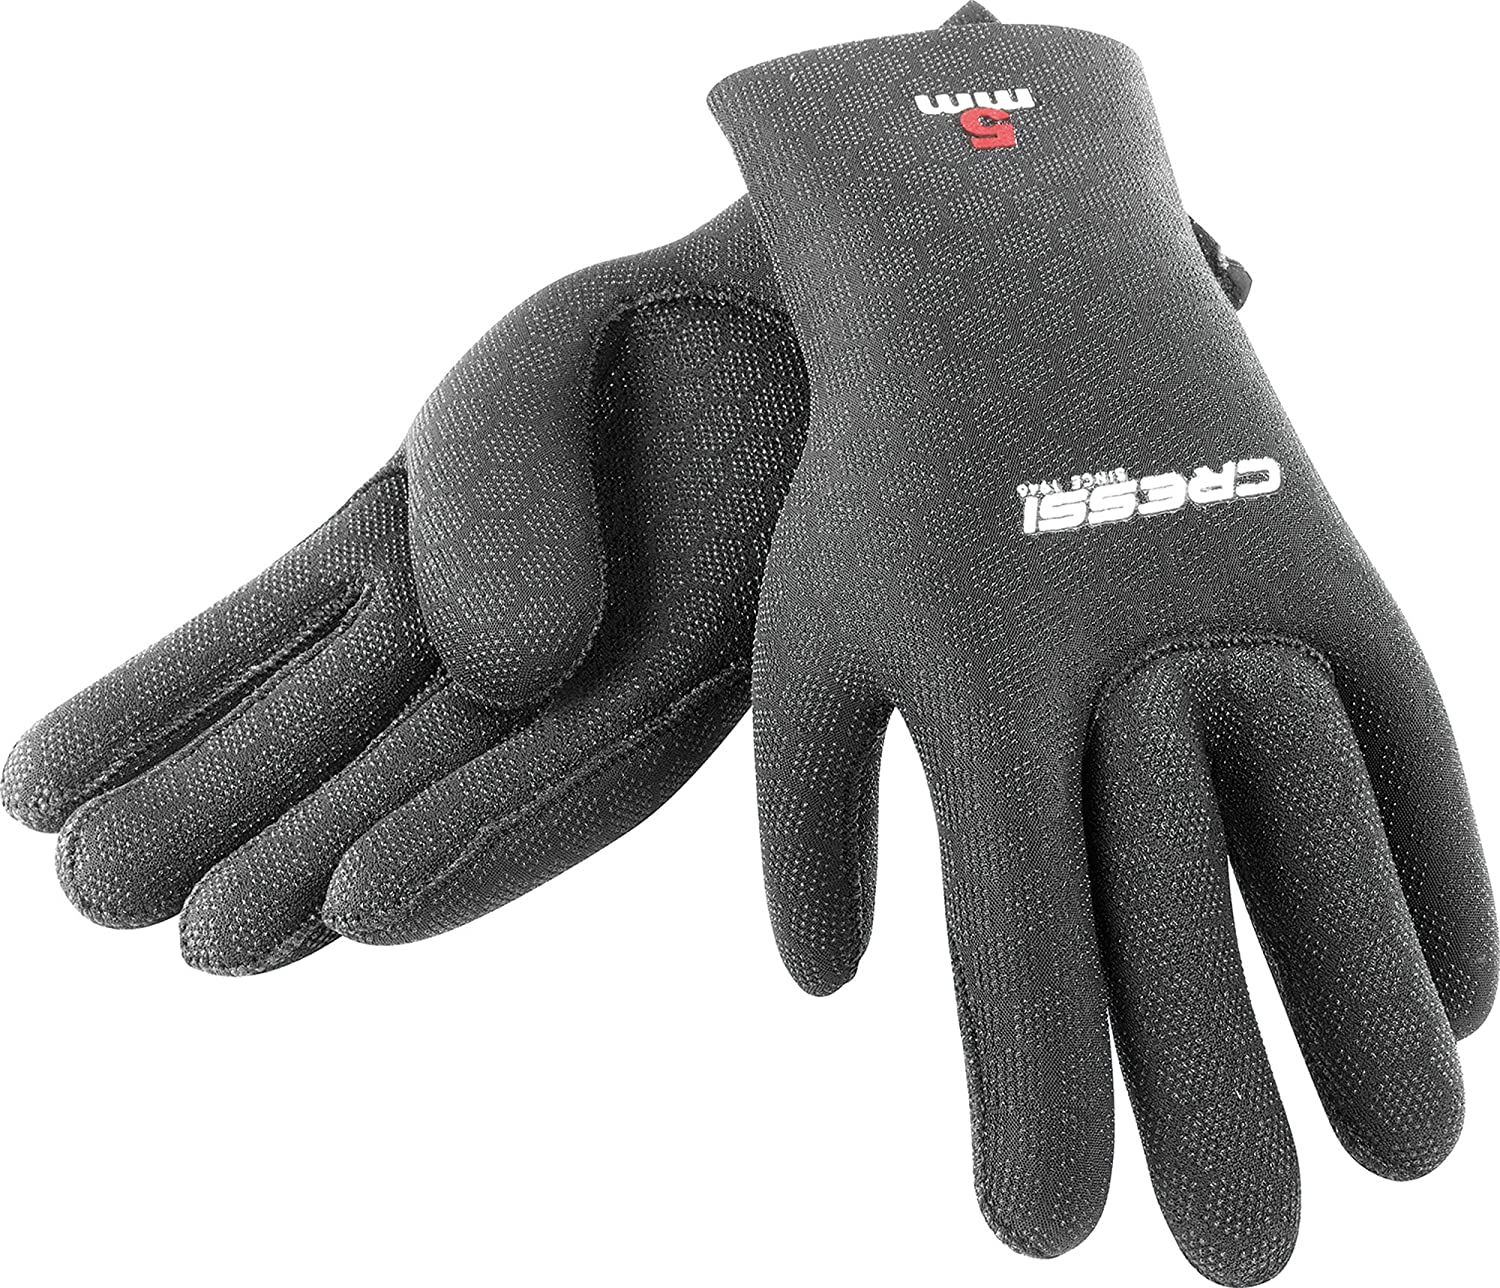 Cressi High Stretch Premium Diving Gloves